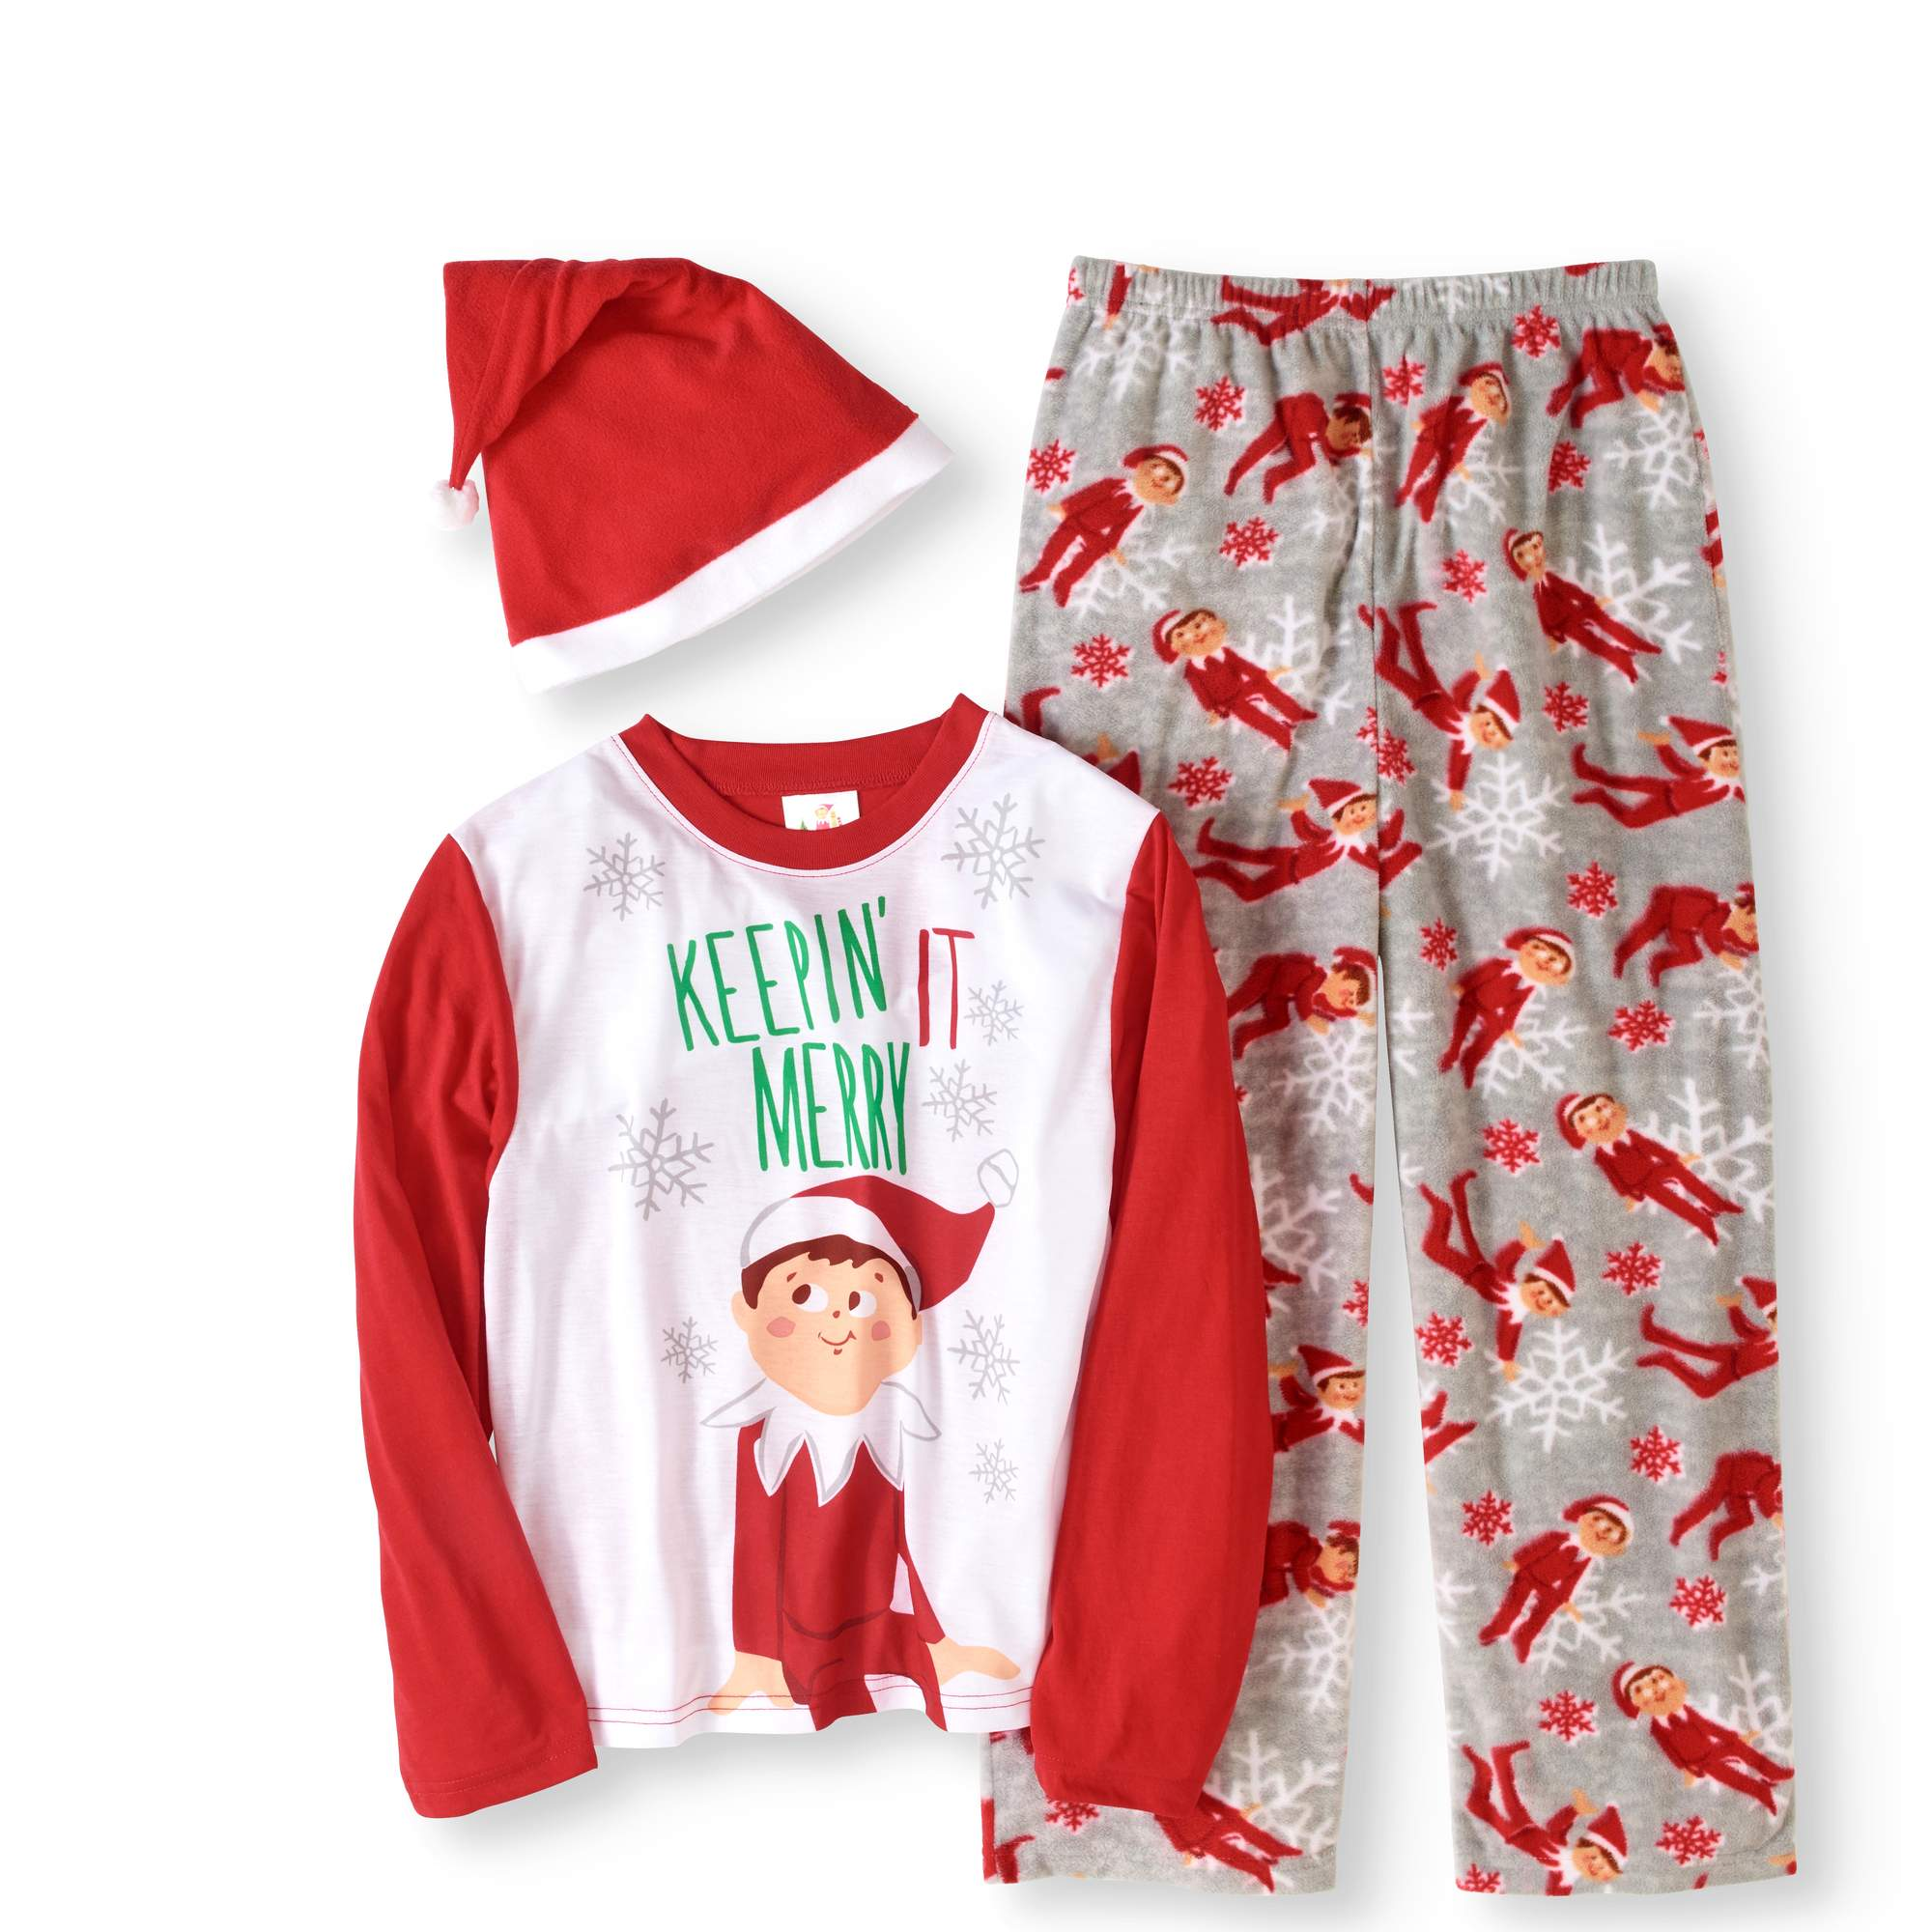 Elf on the Shelf Boys' or Girls' Unisex Family Sleep 3pc Pajamas Set with Hat